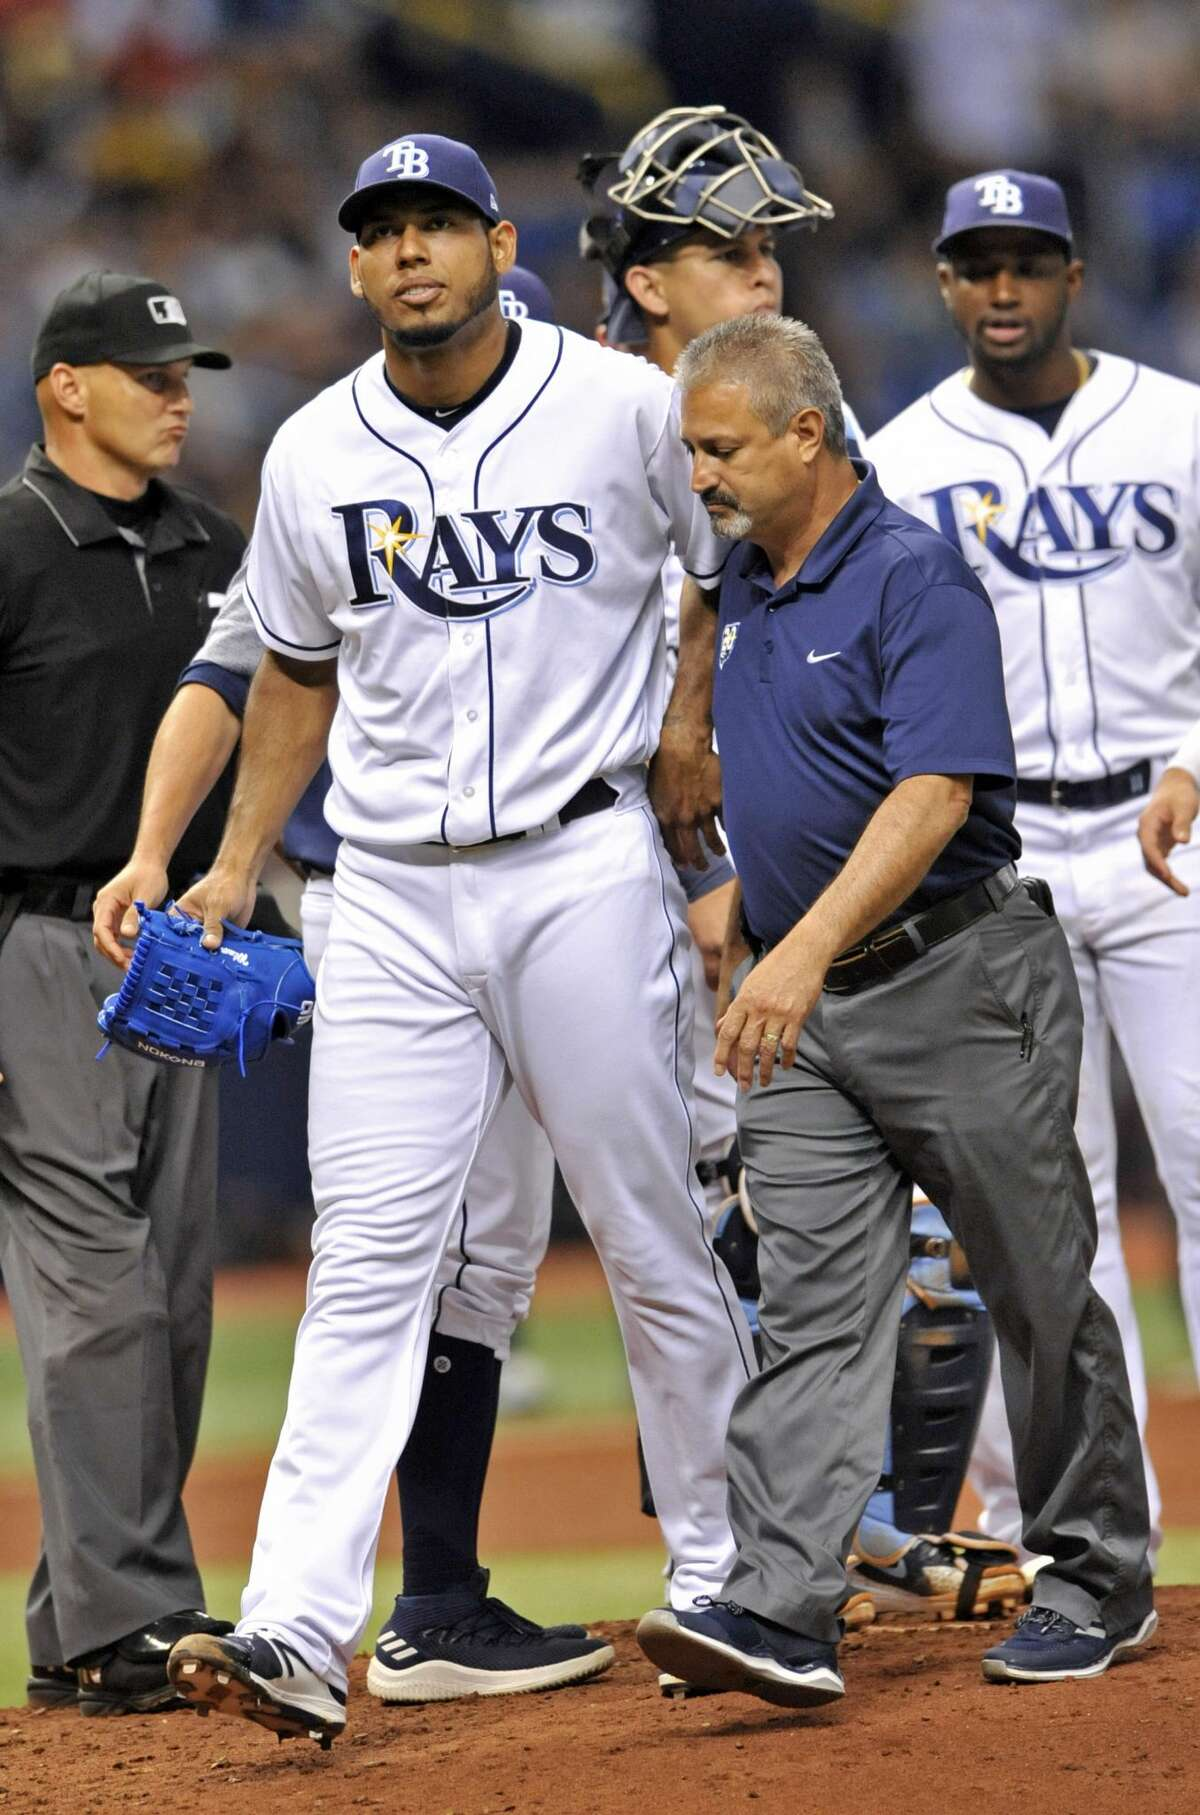 Tampa Bay Rays starter Wilmer Font leaves the game with a Tampa Bay trainer, while pitching to Houston Astros' Alex Bregman during the sixth inning of a baseball game Friday, June 29, 2018, in St. Petersburg, Fla. (AP Photo/Steve Nesius)